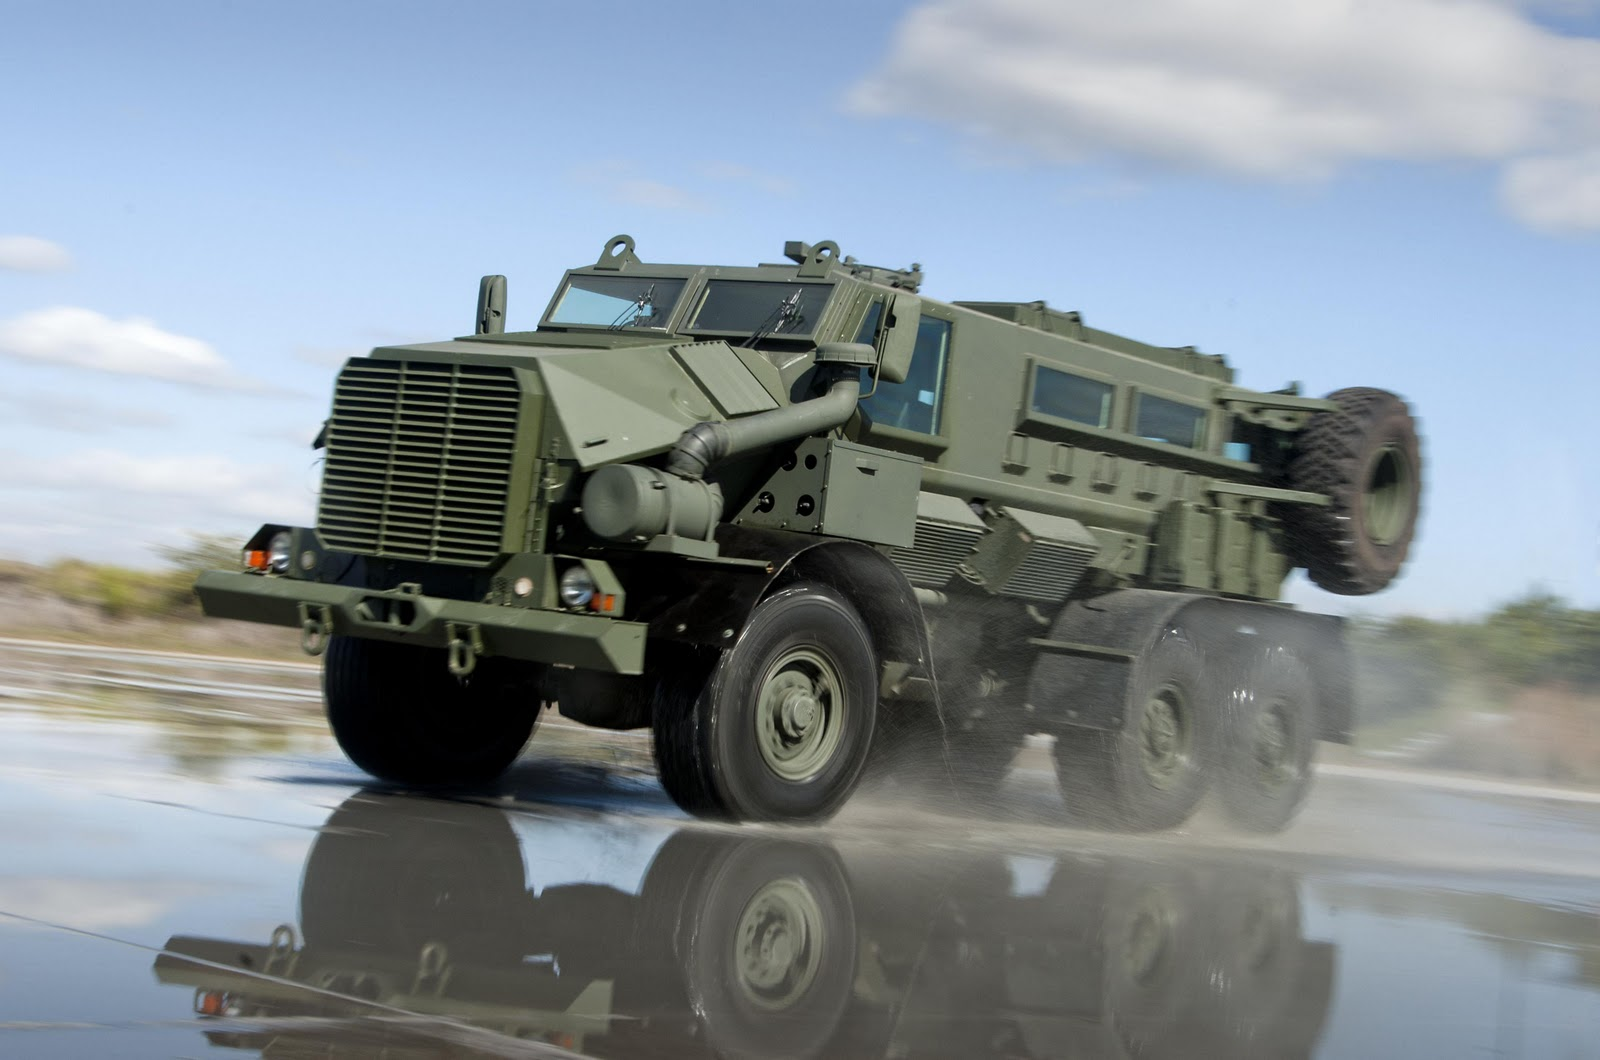 Jharkhand Polic has purchased Mine Protected Vehicle – India MPVI